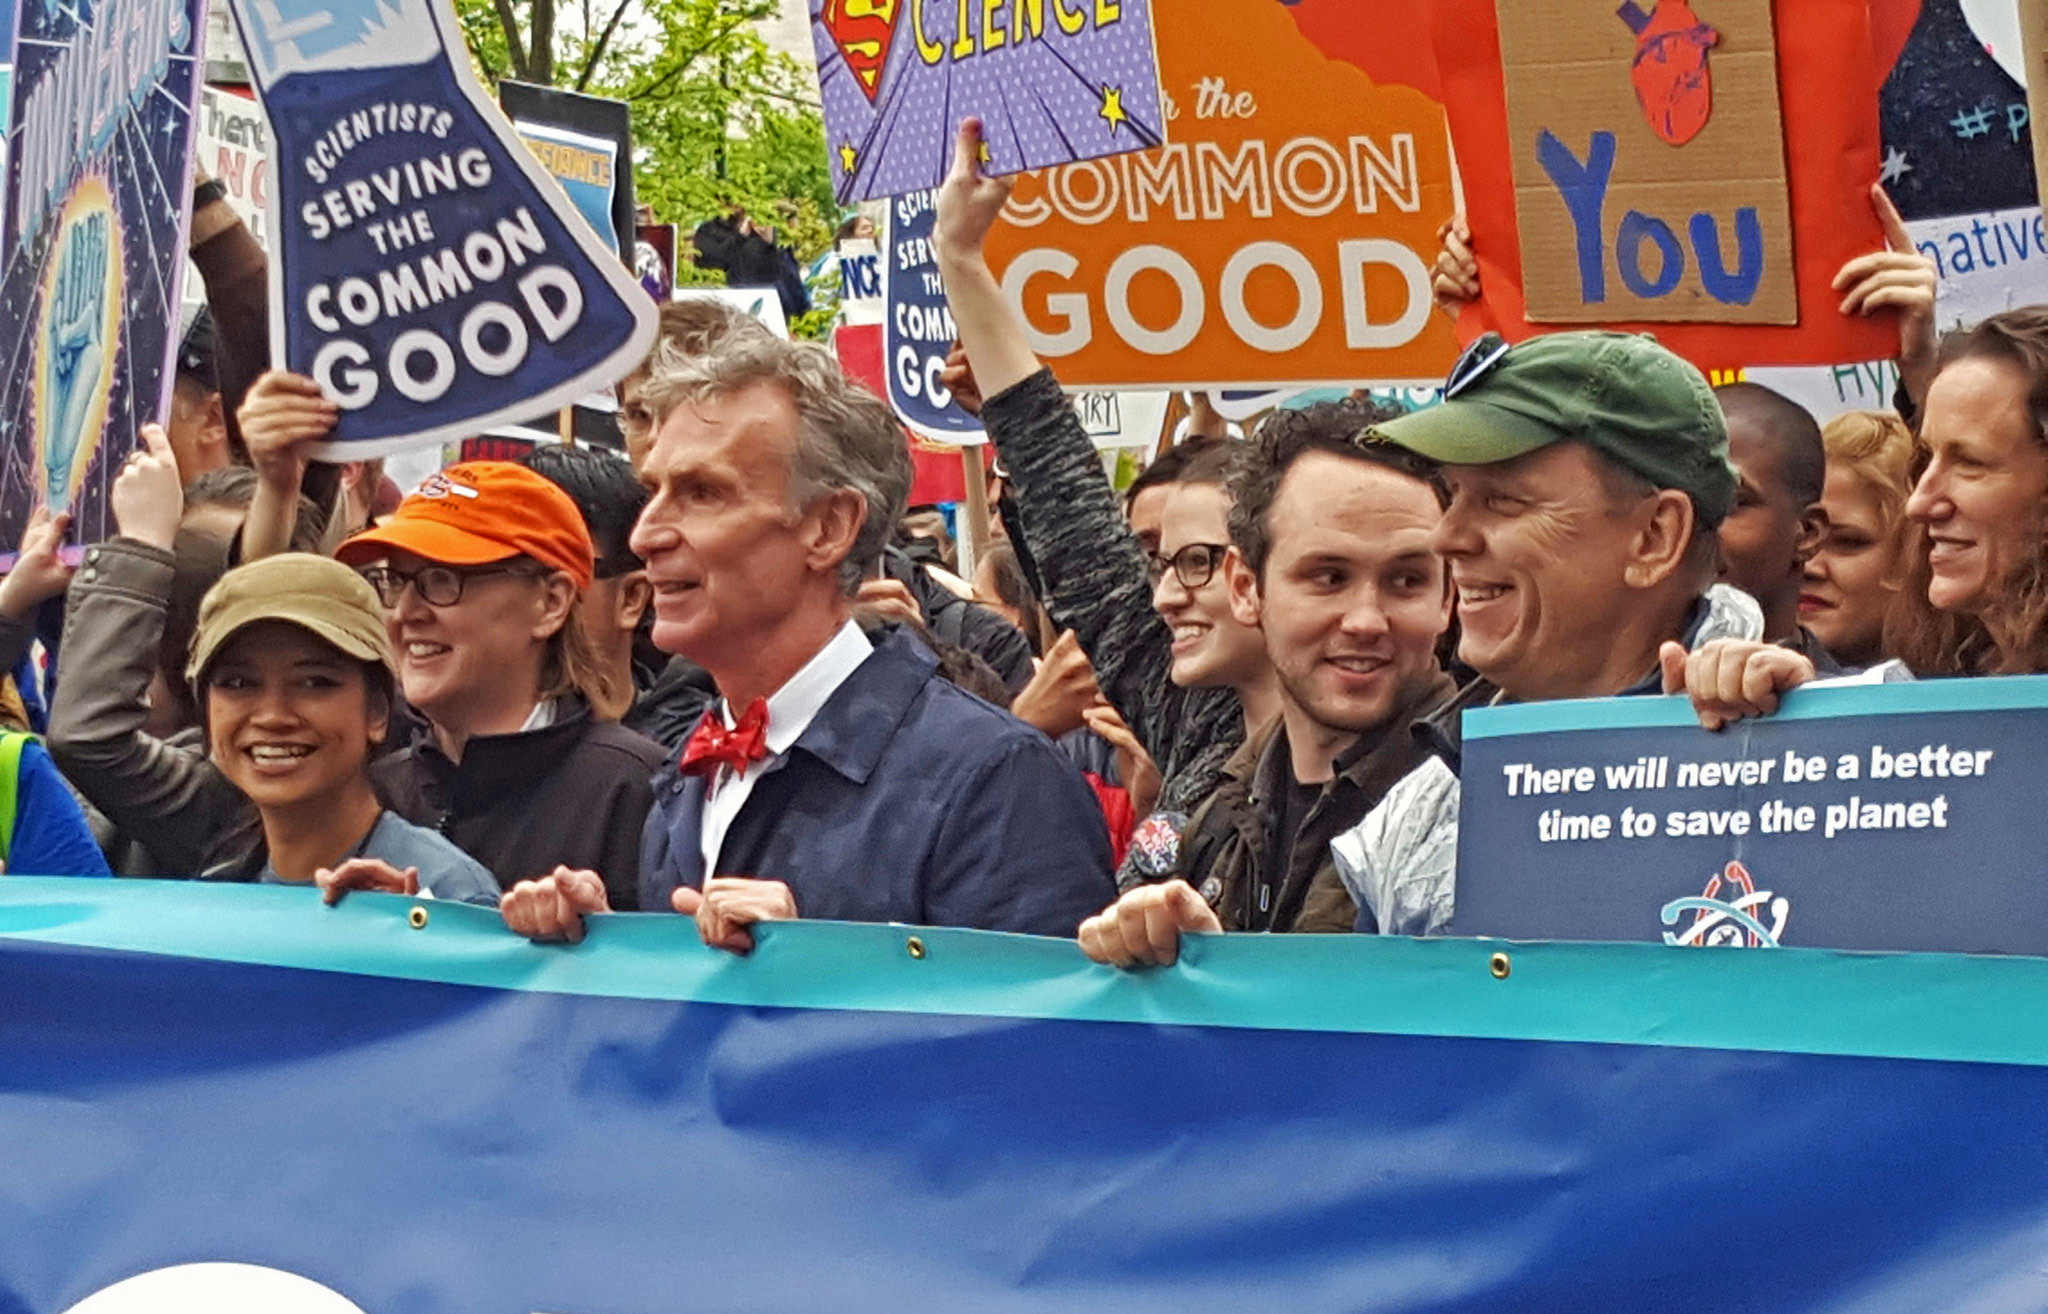 Bill Nye at the March for Science in Washington, D.C., on April 22, 2017. Credit: Flickr/Becker1999.